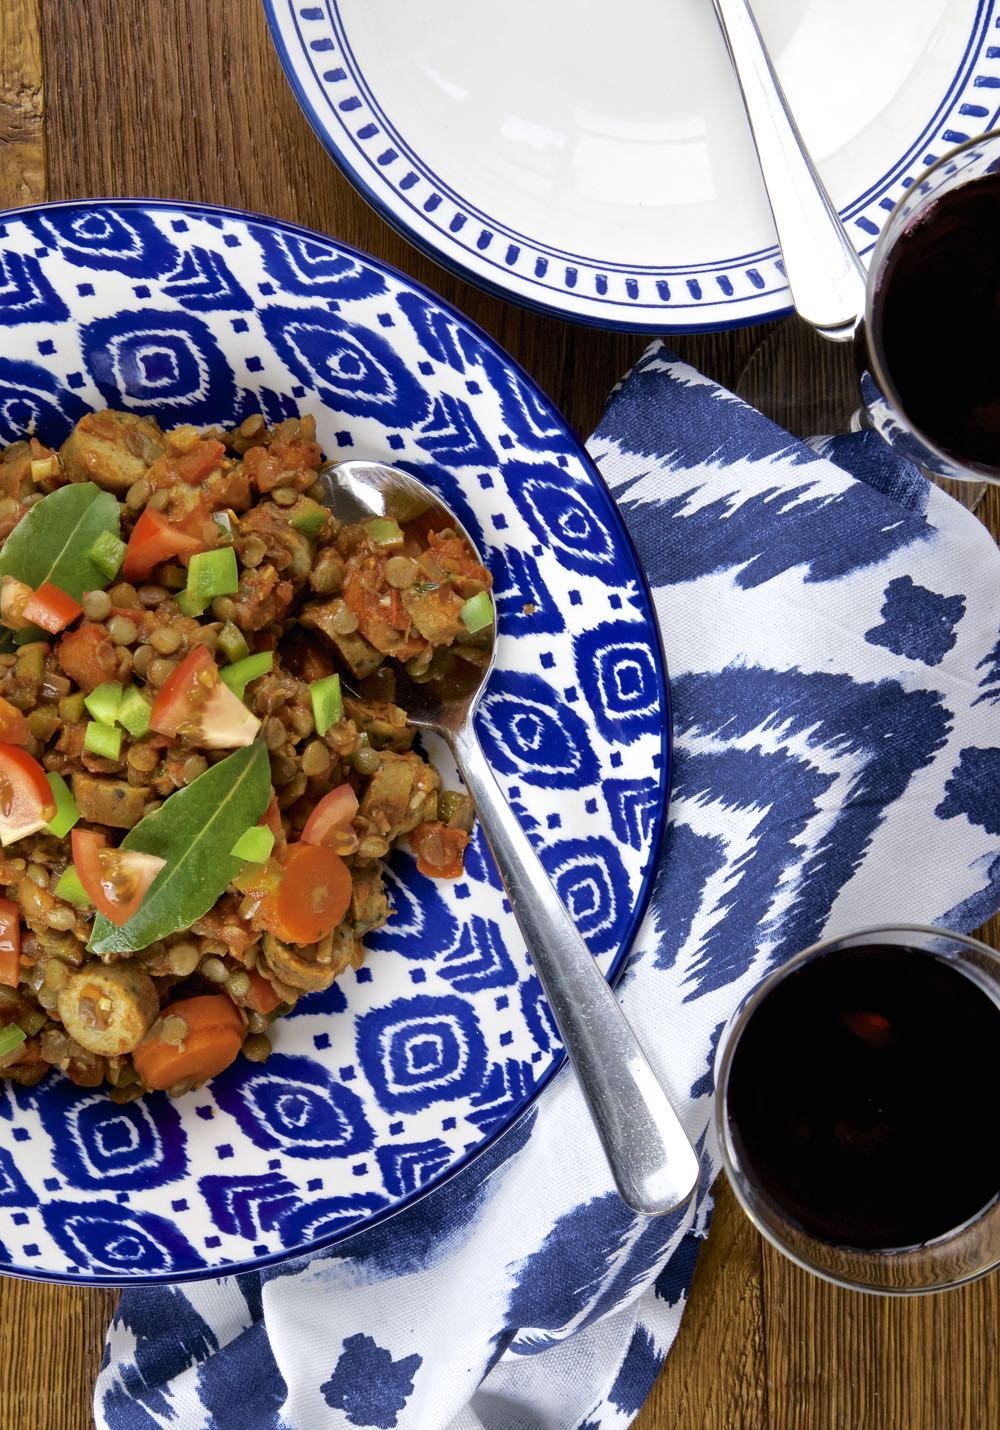 Braised Lentils with Vegetarian or Vegan Sausages, Tomatoes, Green Peppers and Herbs.